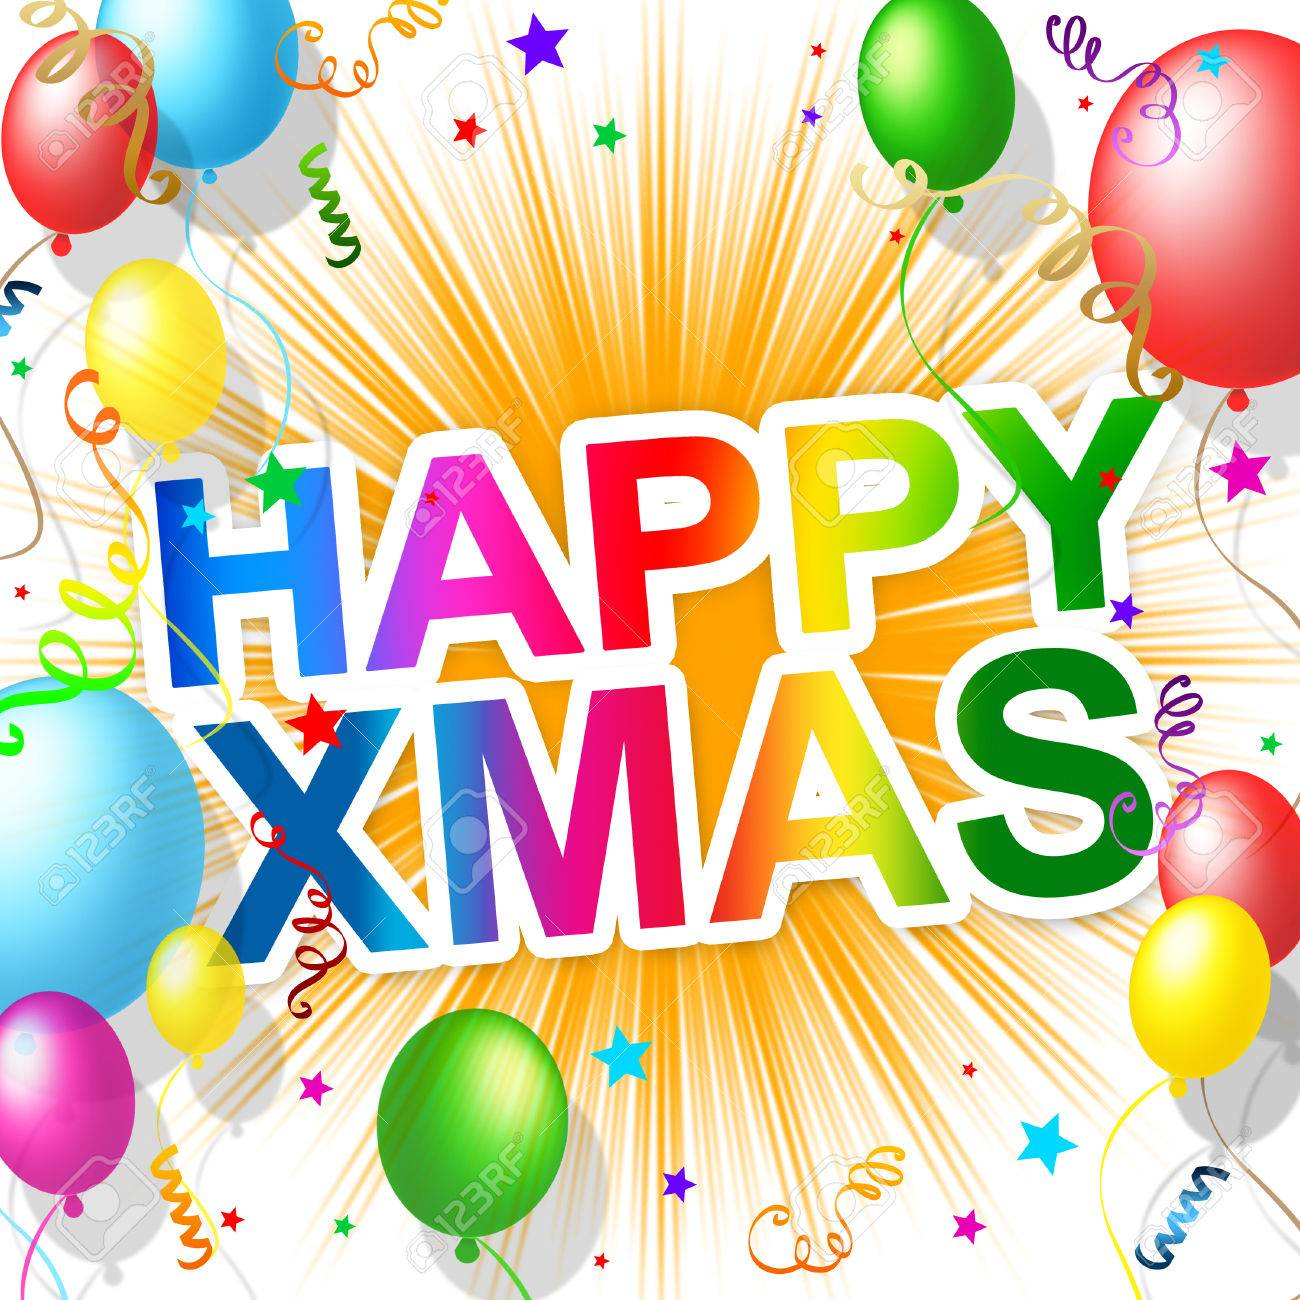 Happy Xmas Meaning Merry Christmas And Celebrate Stock Photo ...